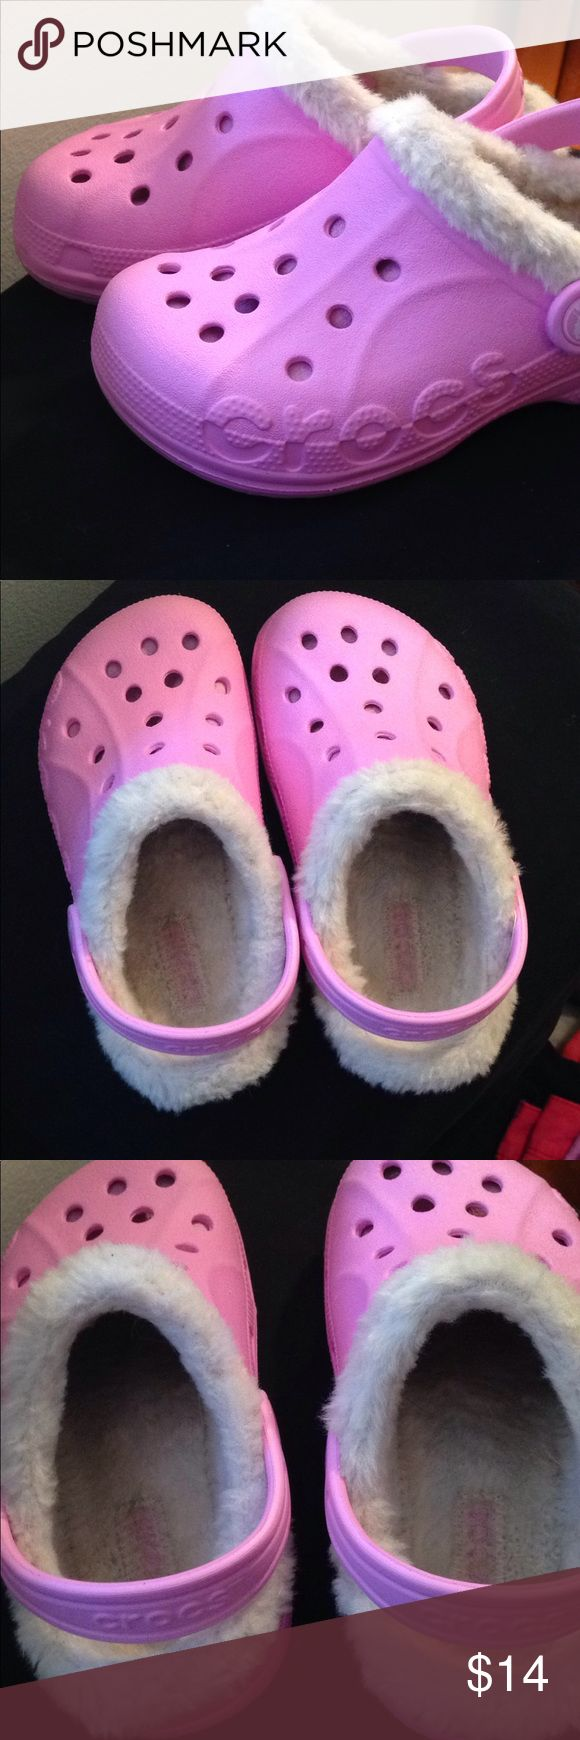 Crocs Light Pink Fur lined shoes c10/11 Child EUC! Fur has some color discoloration which I tried to show in several photos otherwise these are in great condition. No nicks or tears in shoes. No marks elsewhere on shoe. Fairly clean bottoms. Warm slip on Clog style Crocs in Child 10/11 size. CROCS Shoes